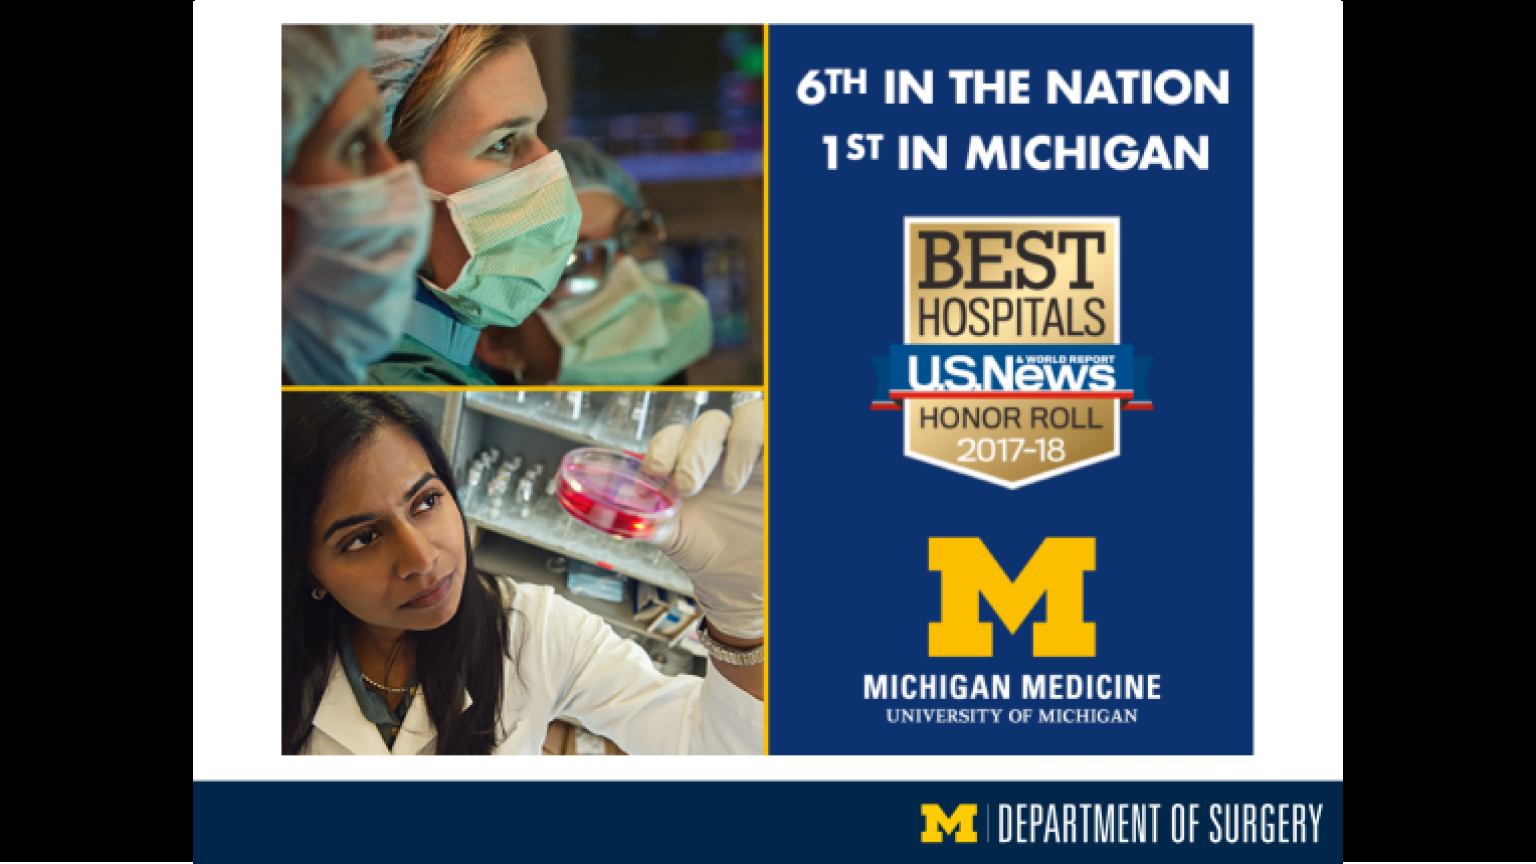 """U.S. News & World Report Best Hospitals Honor Roll 2017-2018 states Michigan Medicine is 6th in the nation and 1st in Michigan - third slide of """"This Is What We Stand For"""" presentation"""